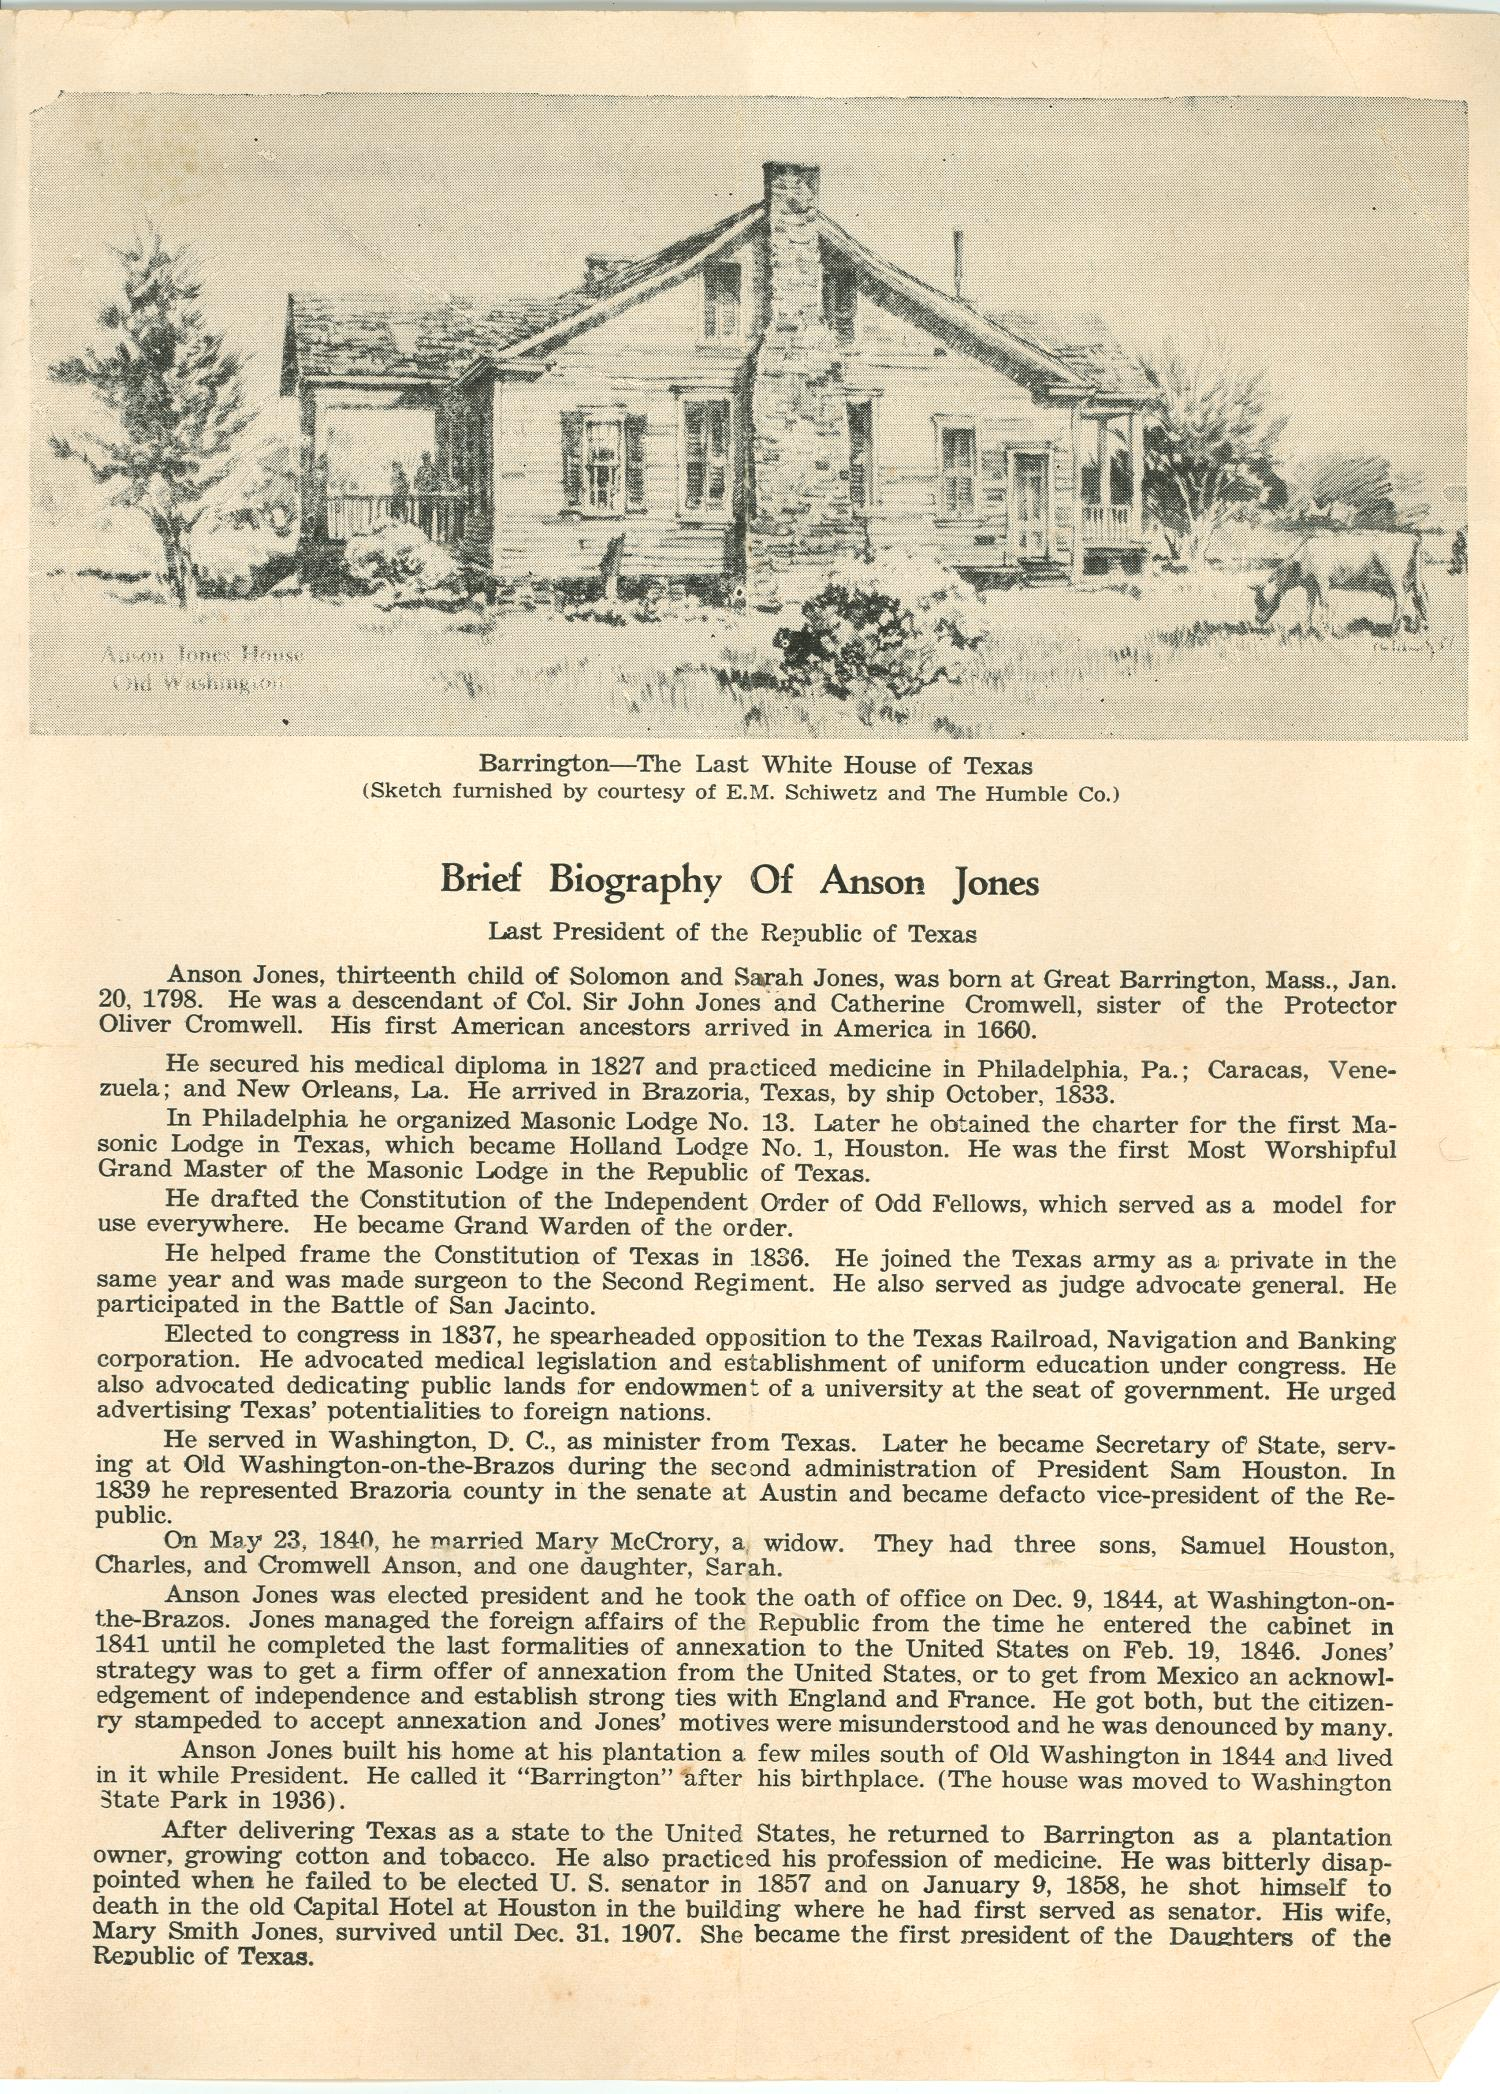 a short biography of anson jones Anson jones (january 20, 1798 – january 9, 1858) was a doctor, businessperson, member of congress, and the fourth and last president of the republic of texas .